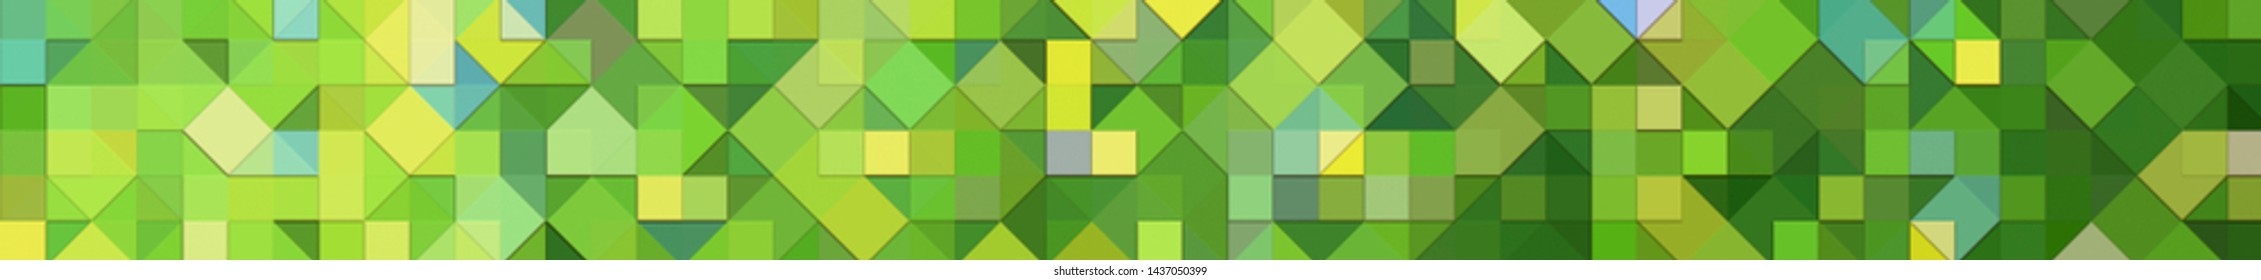 Panoramic green background texture with mosaic. Geometric mosaic design. Abstract color trendy background. Mosaic texture with geometric shapes.